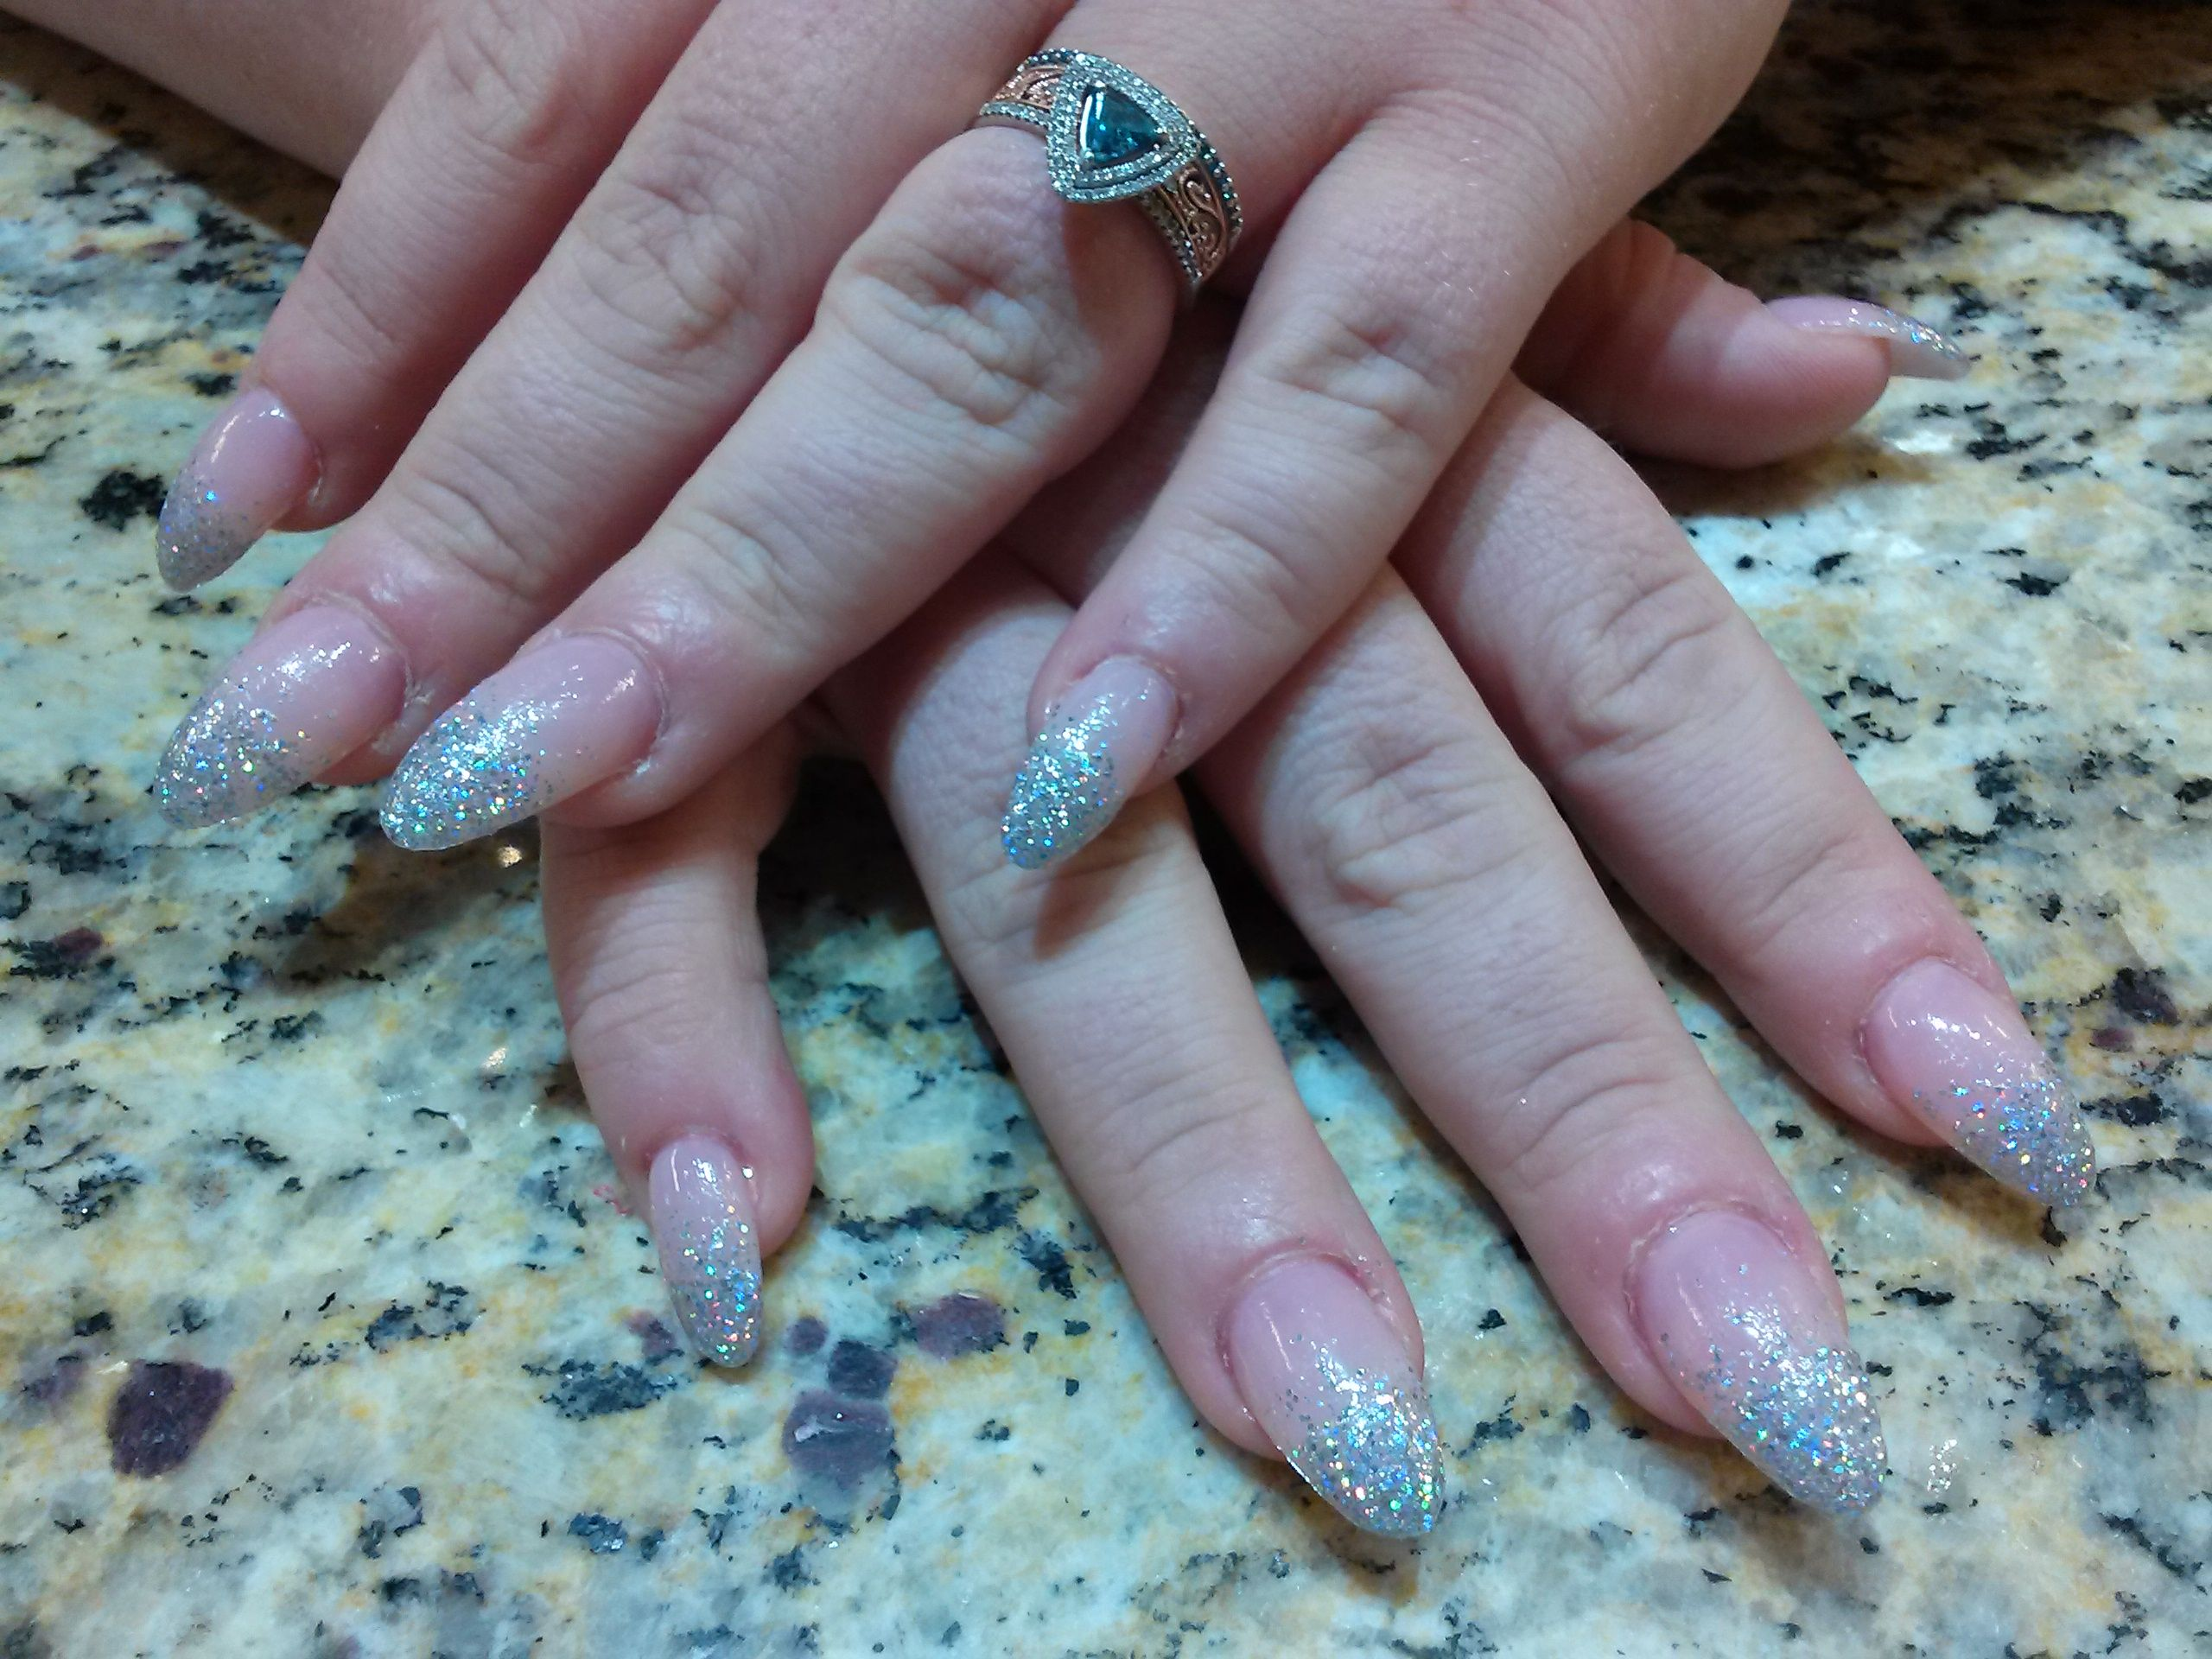 15 Ombr Tipsy Almond Shaped Acrylic Nails With Sheer -9250